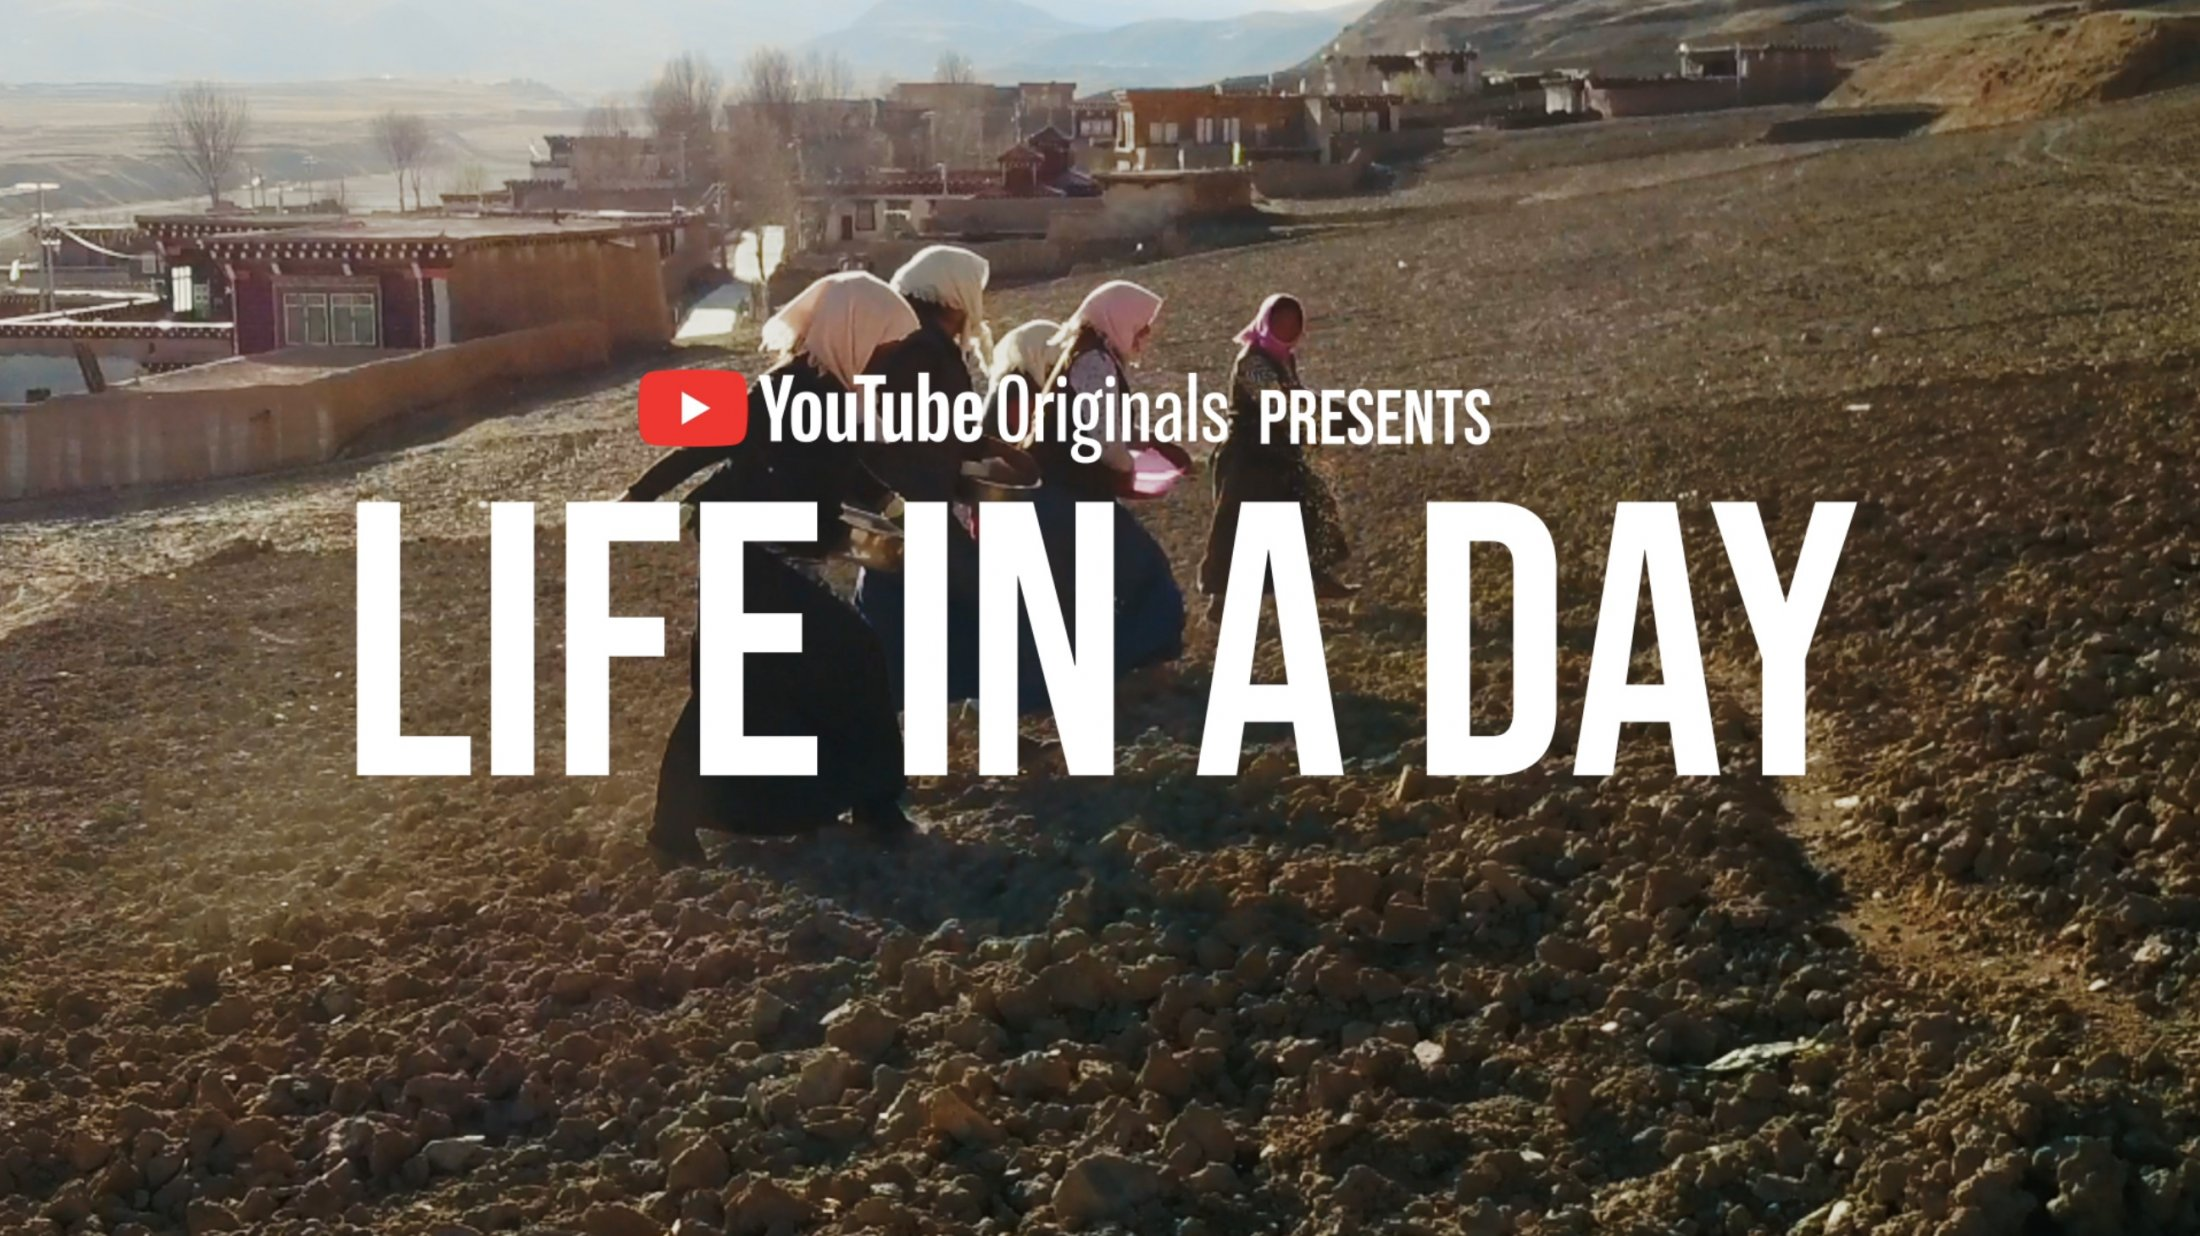 Thumbnail for Life in a Day 2020: Strangers On The Road